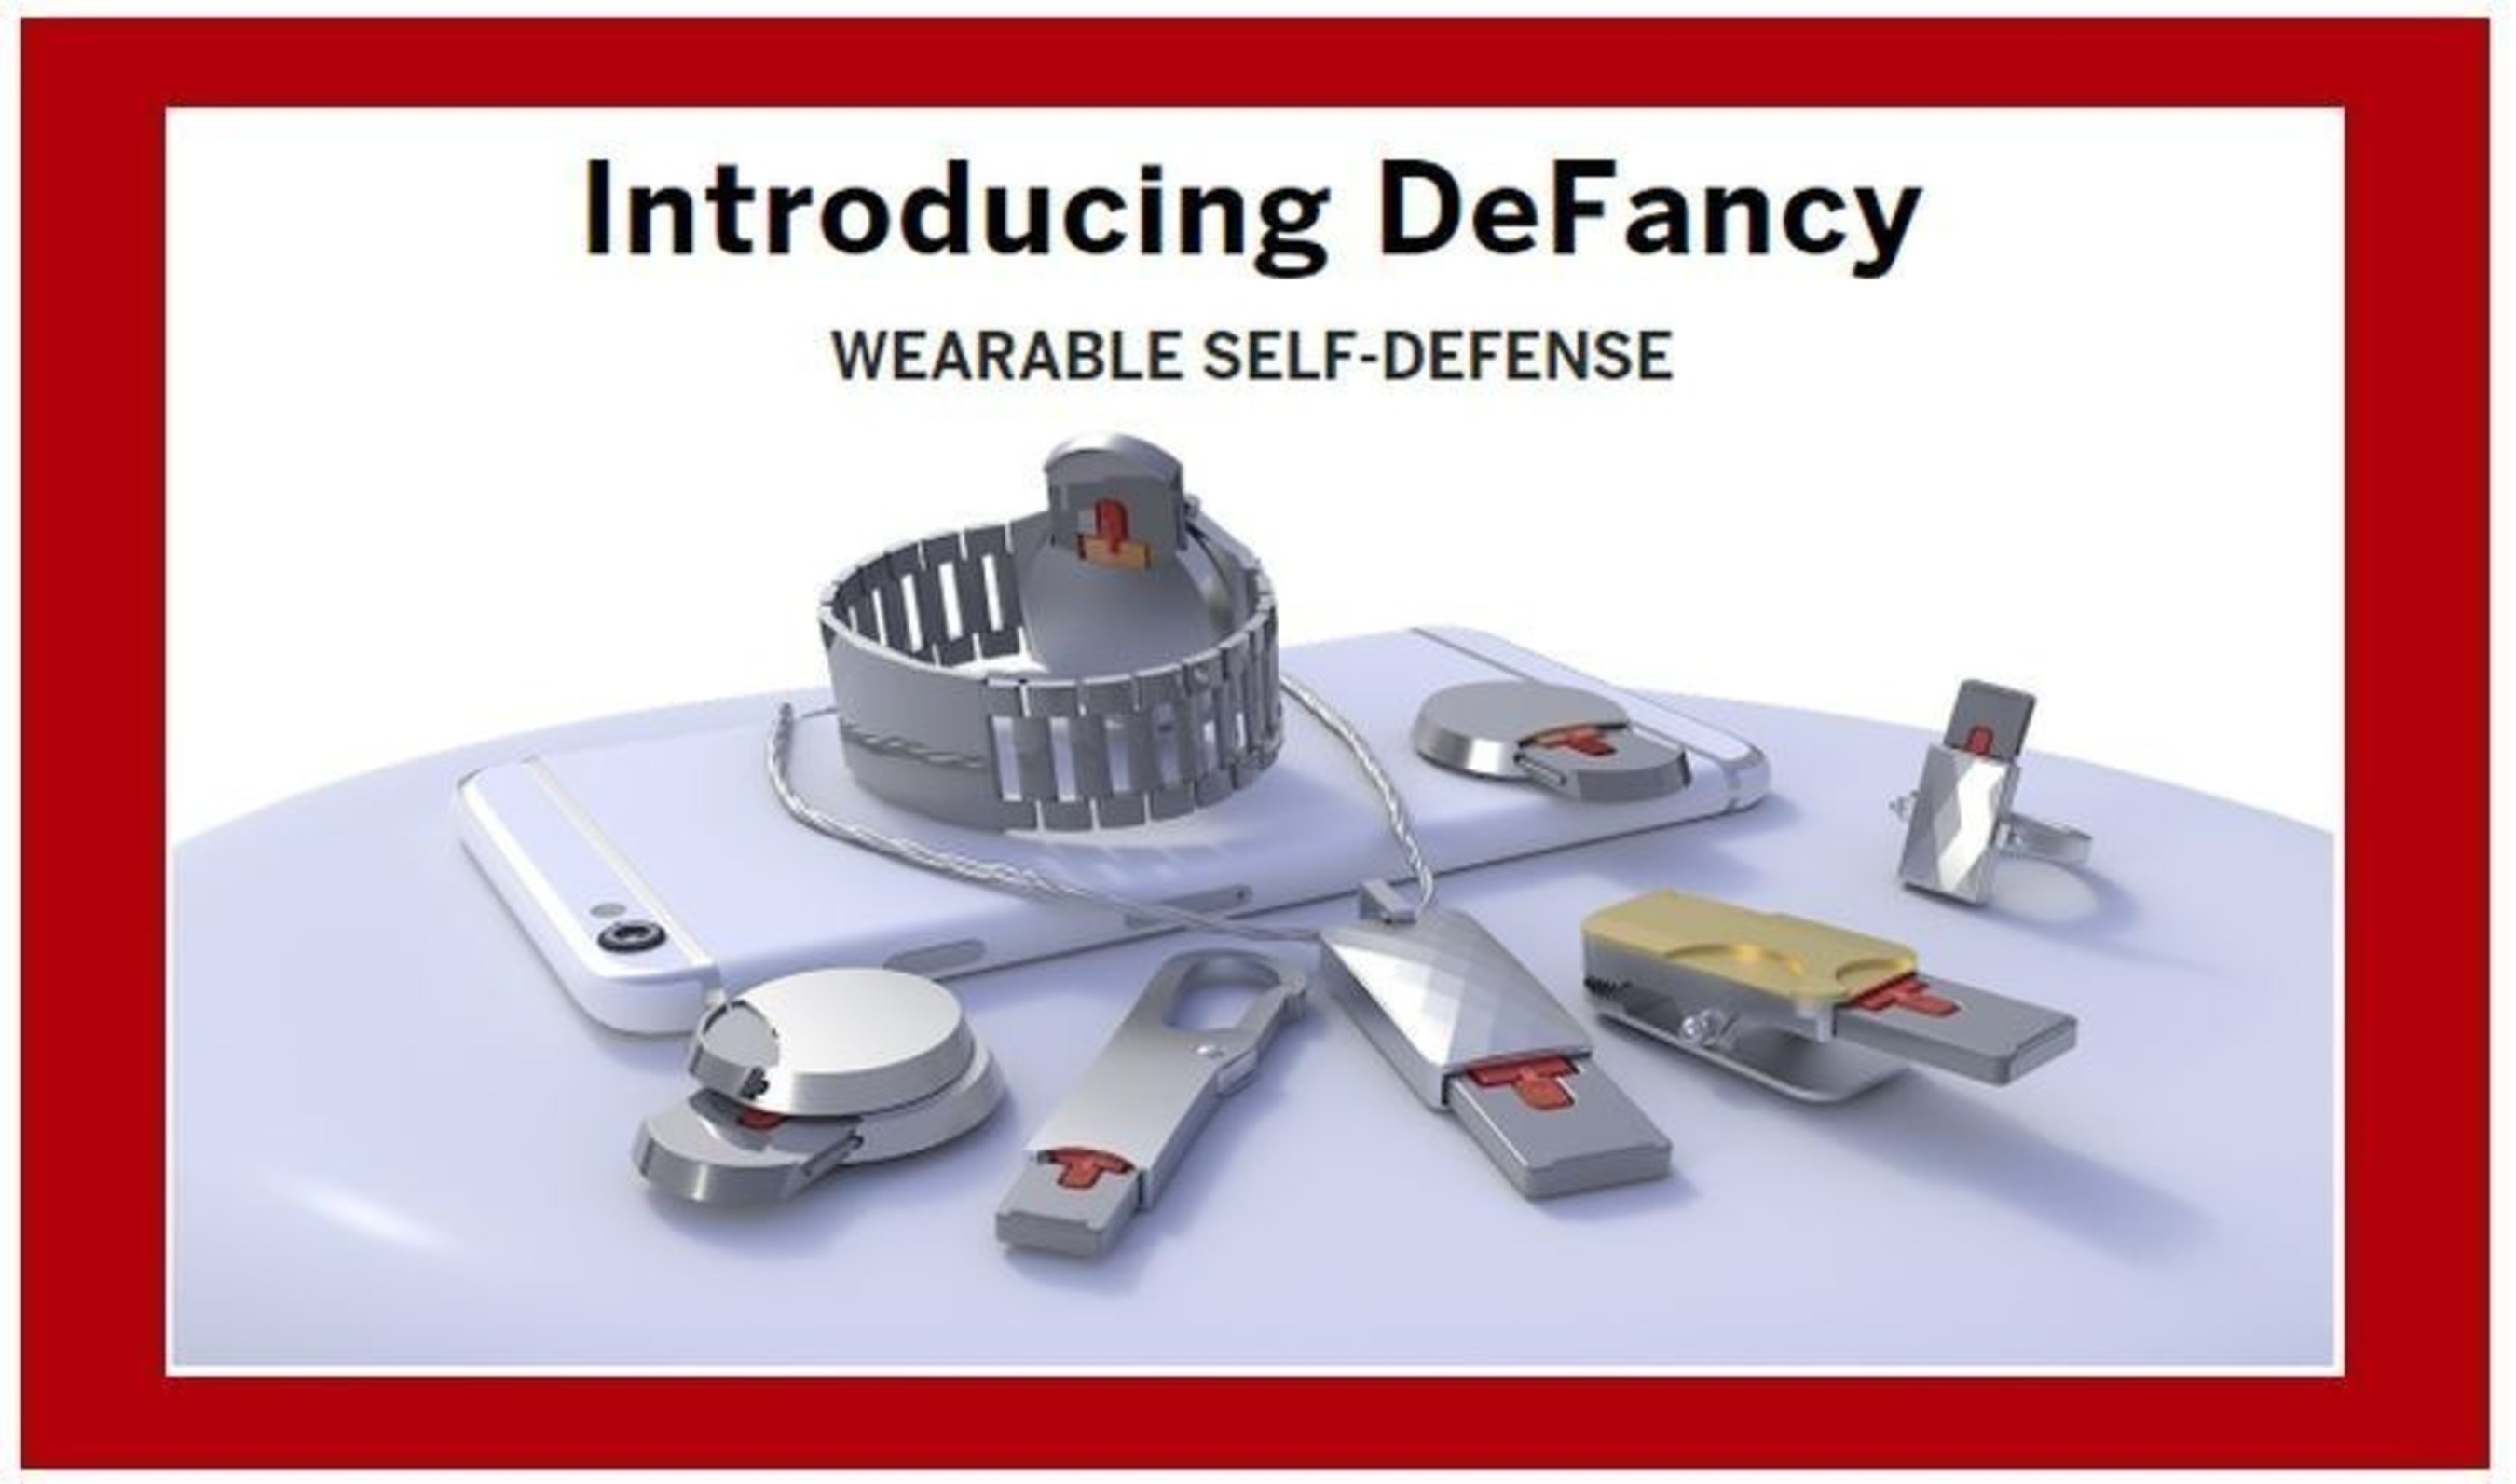 DeFancy Launches a Campaign to Introduce Their Wearable Self-Defense Product Line